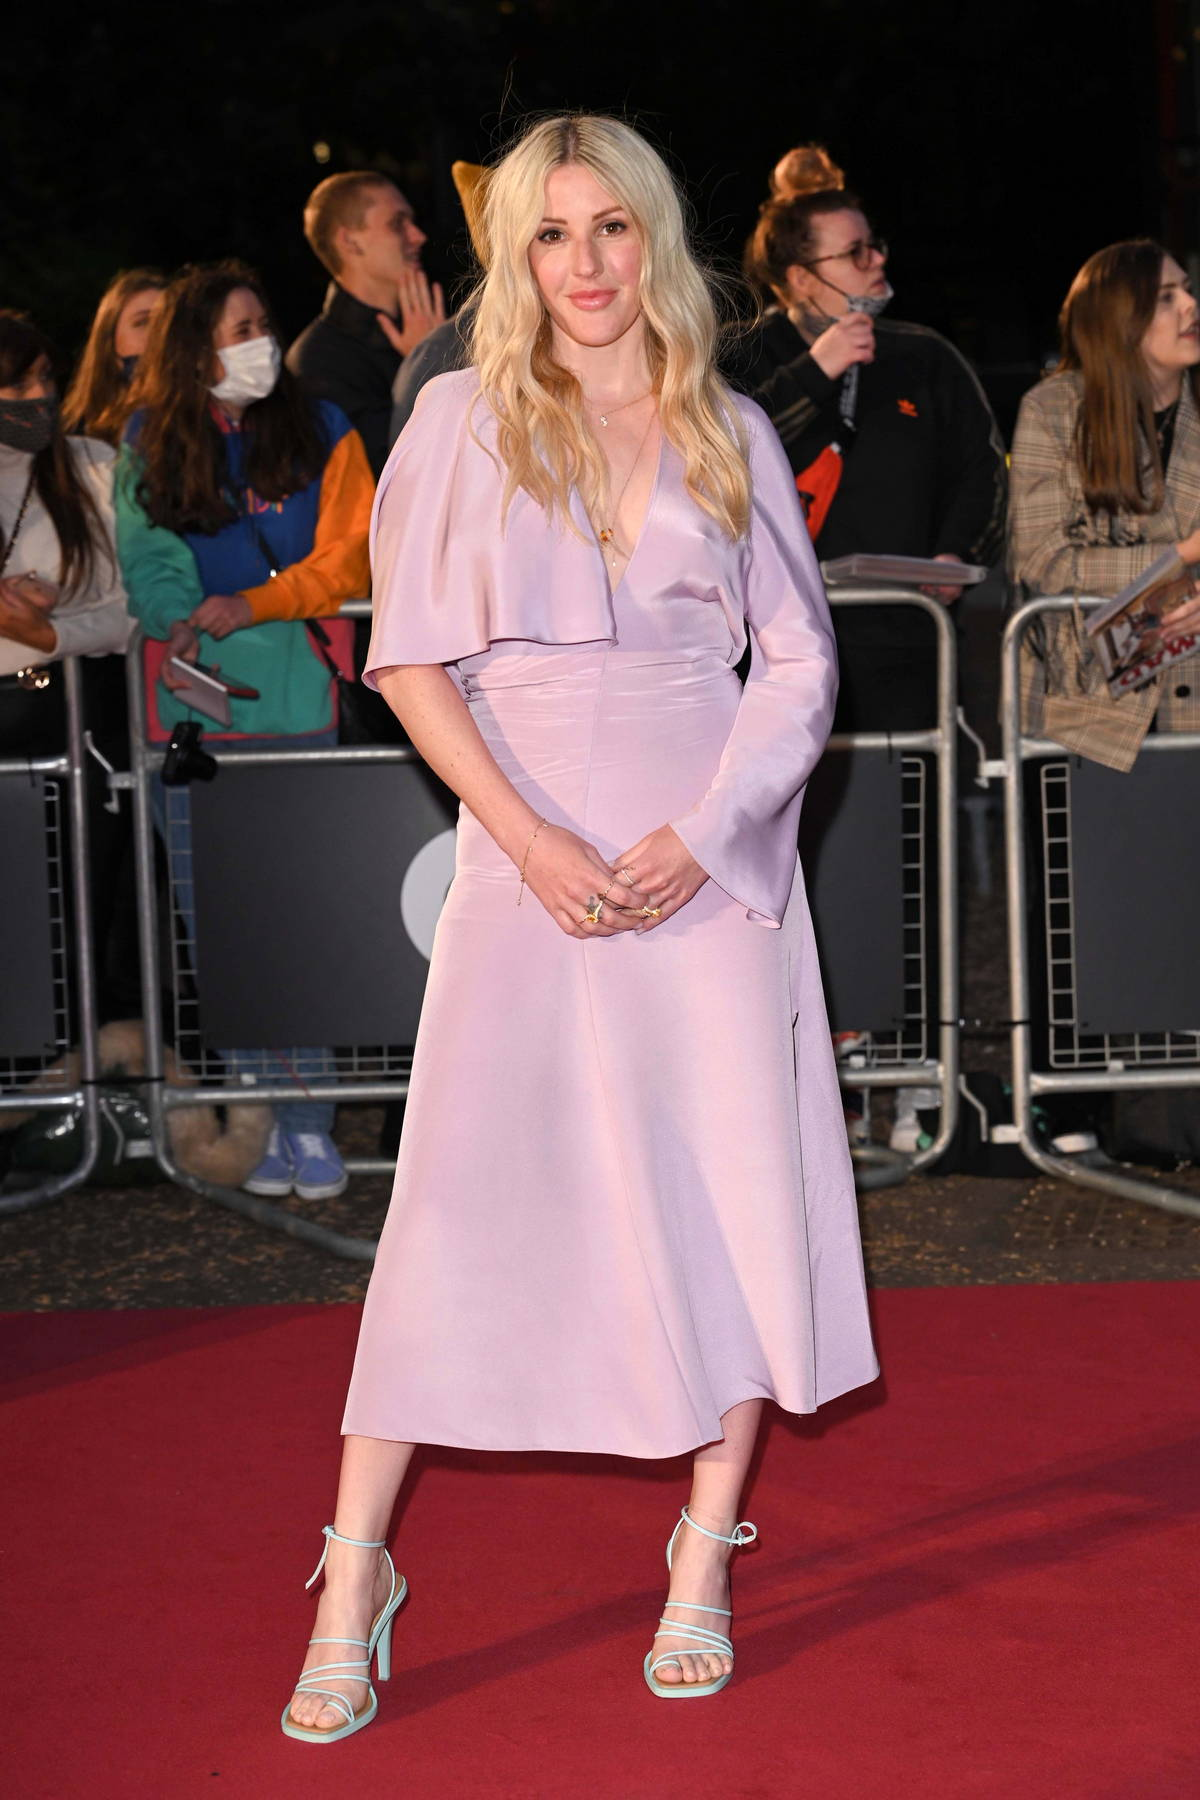 Ellie Goulding attends the GQ Men Of The Year Awards 2021 at the Tate Modern in London, UK